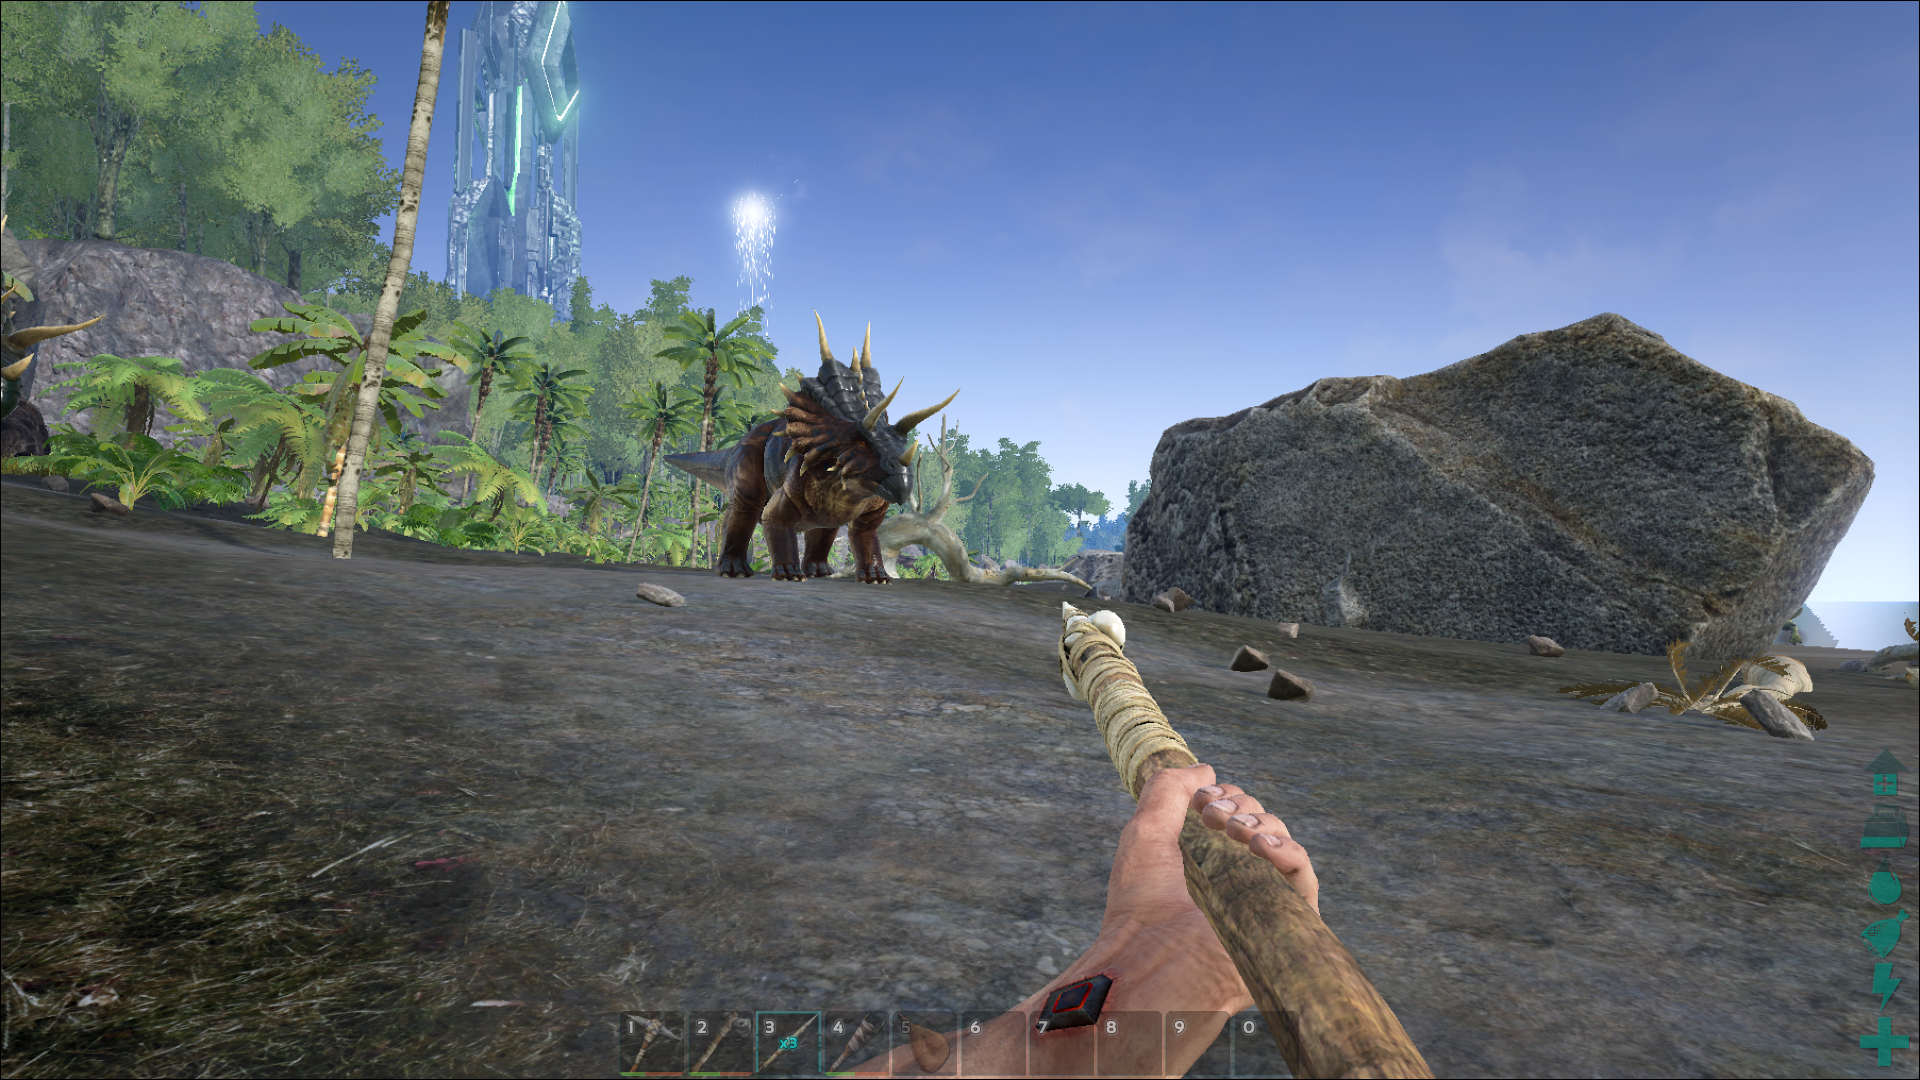 ARK: Survival Evolved runs in Linux, but doesn't look anywhere near as good as the Windows version does at highest settings, and performs worse overall.